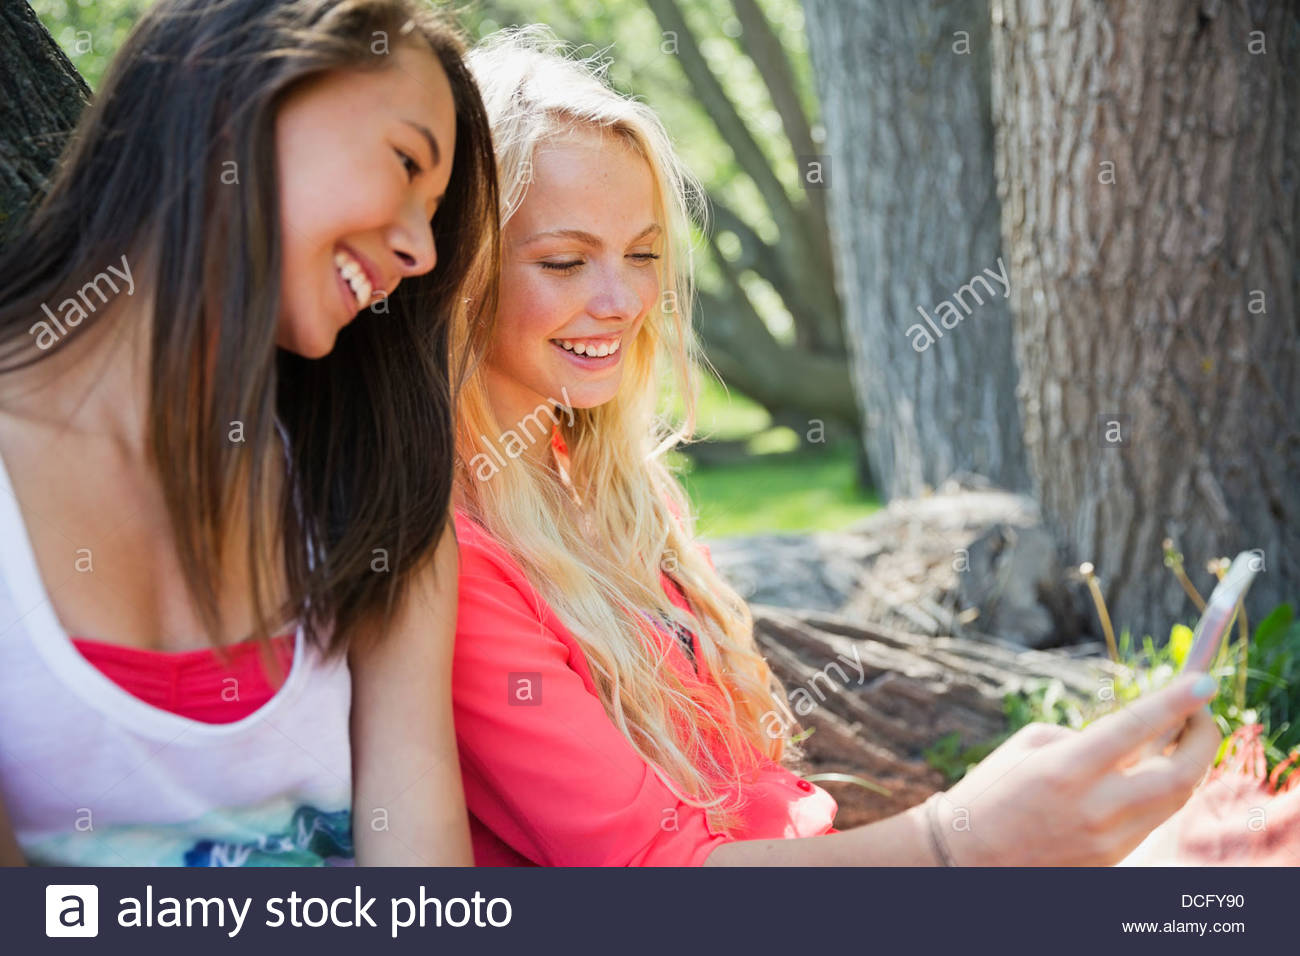 Teenage Girls taking self-portrait at park Photo Stock